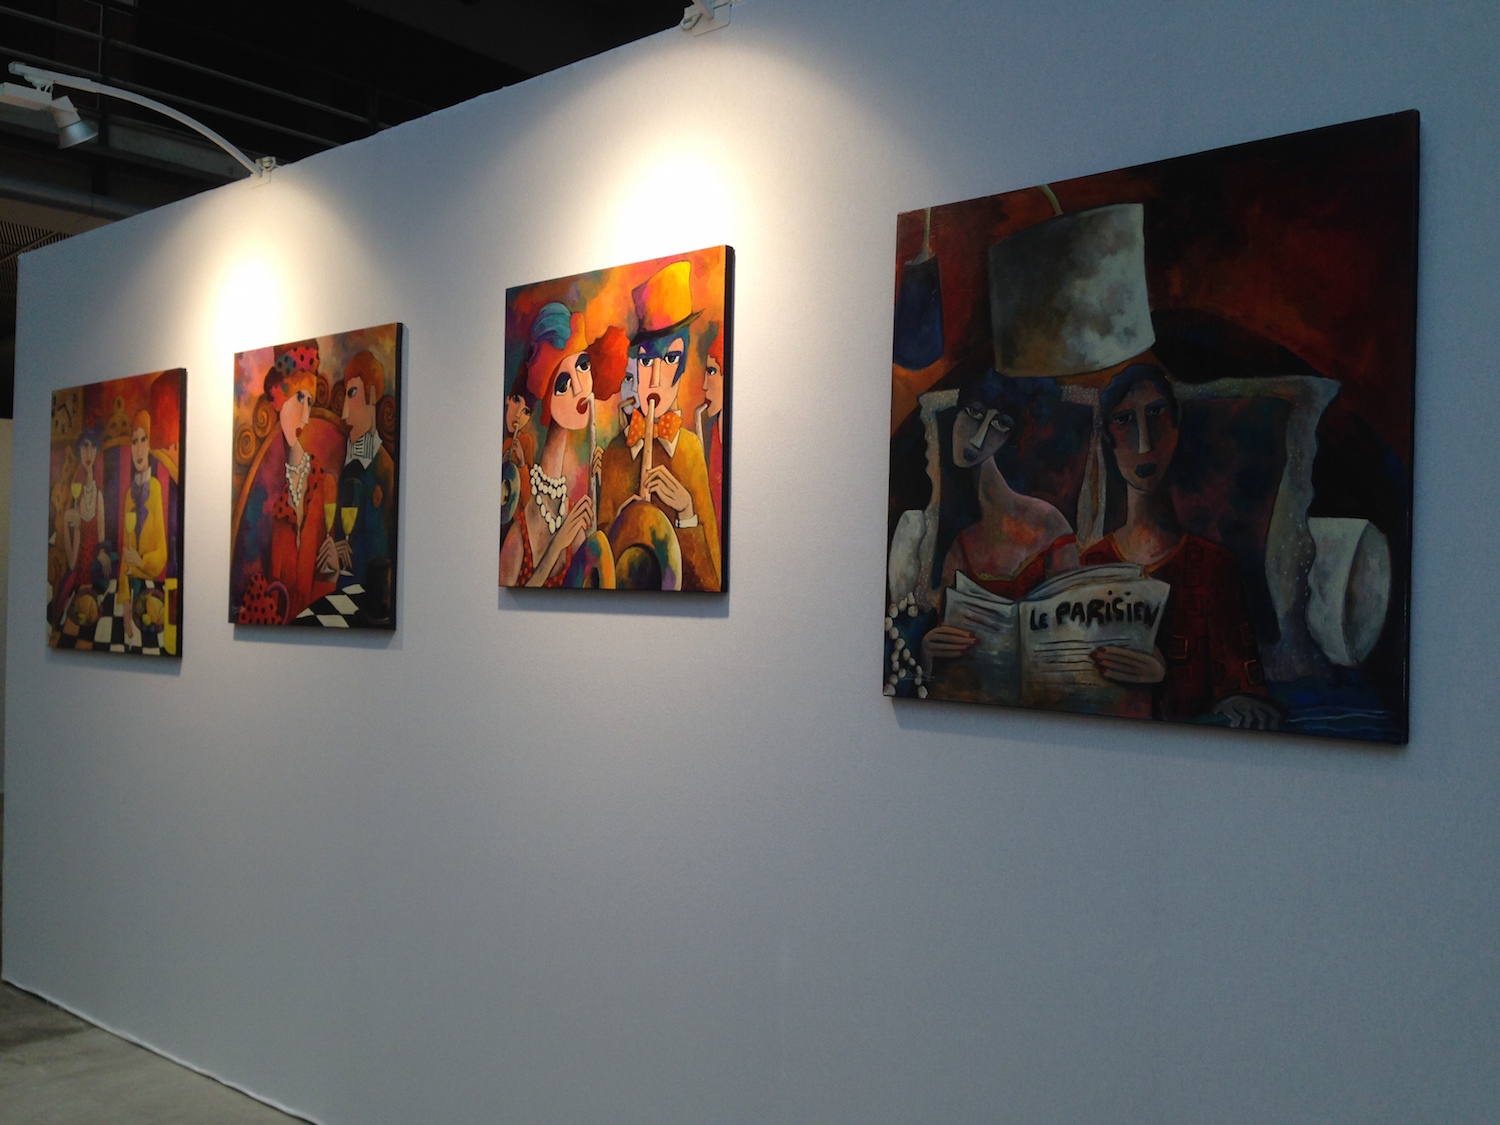 salon art3f nice 2014 artiste peintre fauve